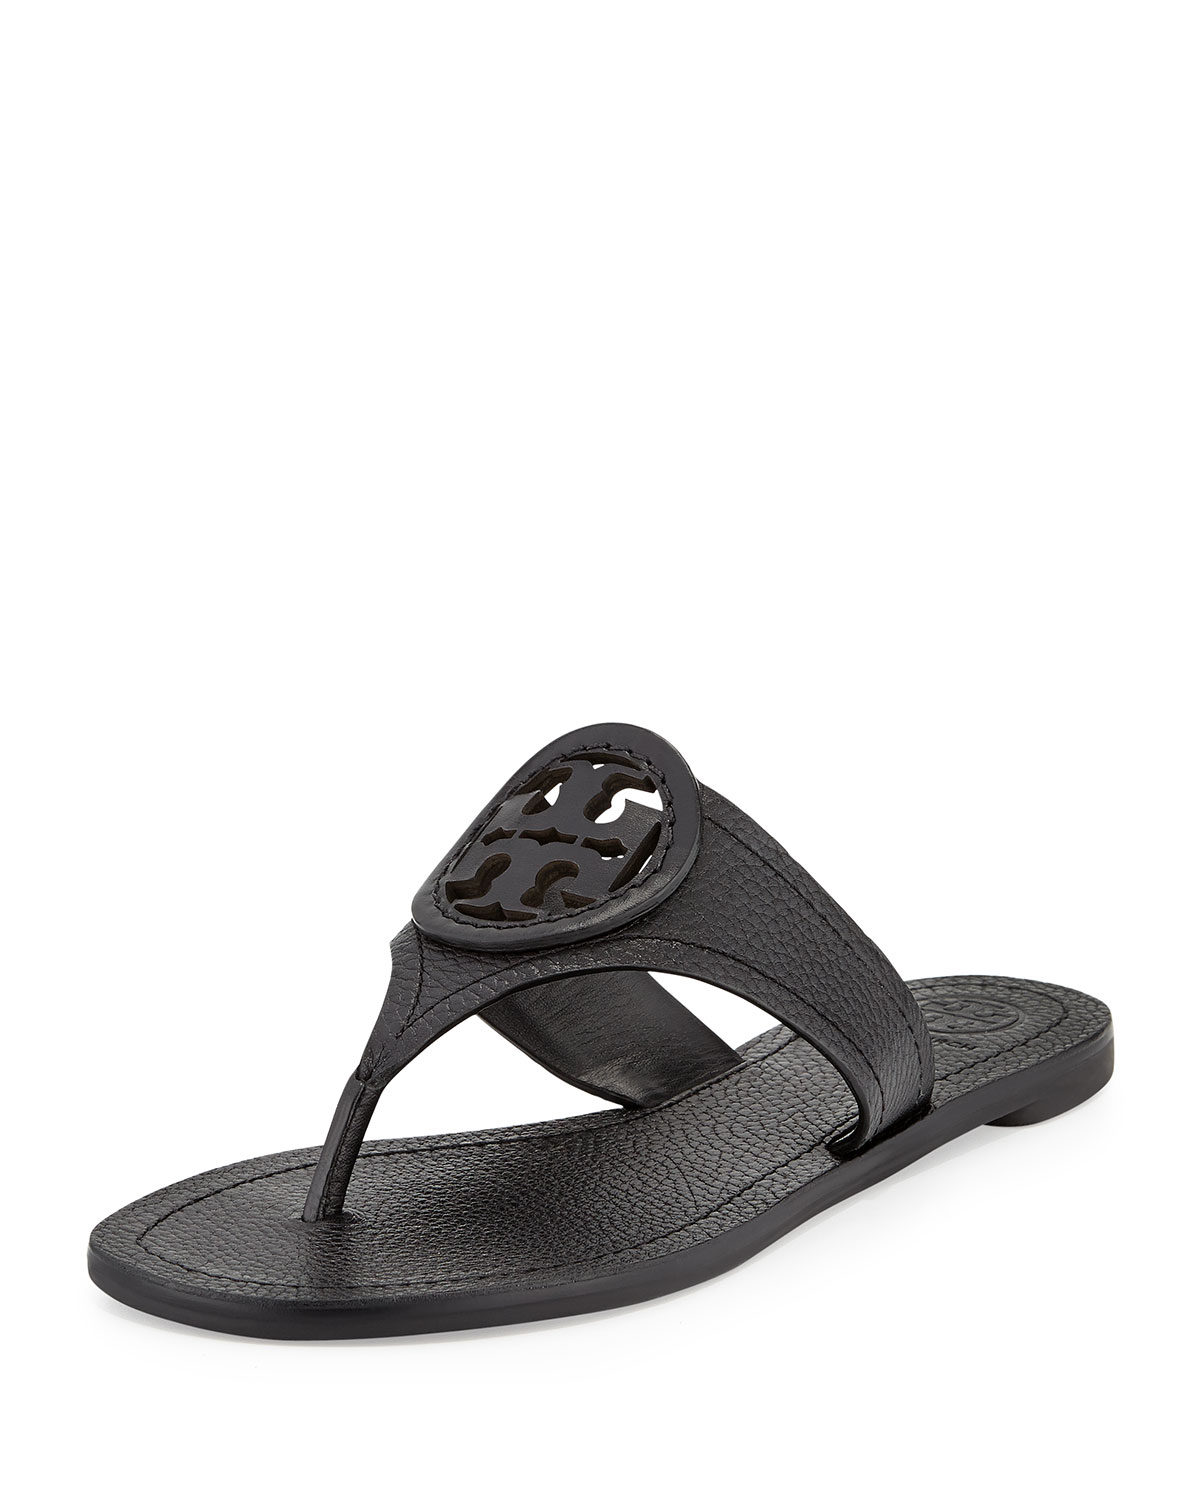 Product - Tory Burch Women's Thora Flat Thong Sandal (Black, Size 8) Product Image. Price $ Product Title. Tory Burch Women's Thora Flat Thong Sandal (Black, Size 8) Add To Cart. Product - Tory Burch Flip Flops Shoes Sandals Flat Rubber NEW (7, Navy Sea New Travelr Square) Product Image. Price $